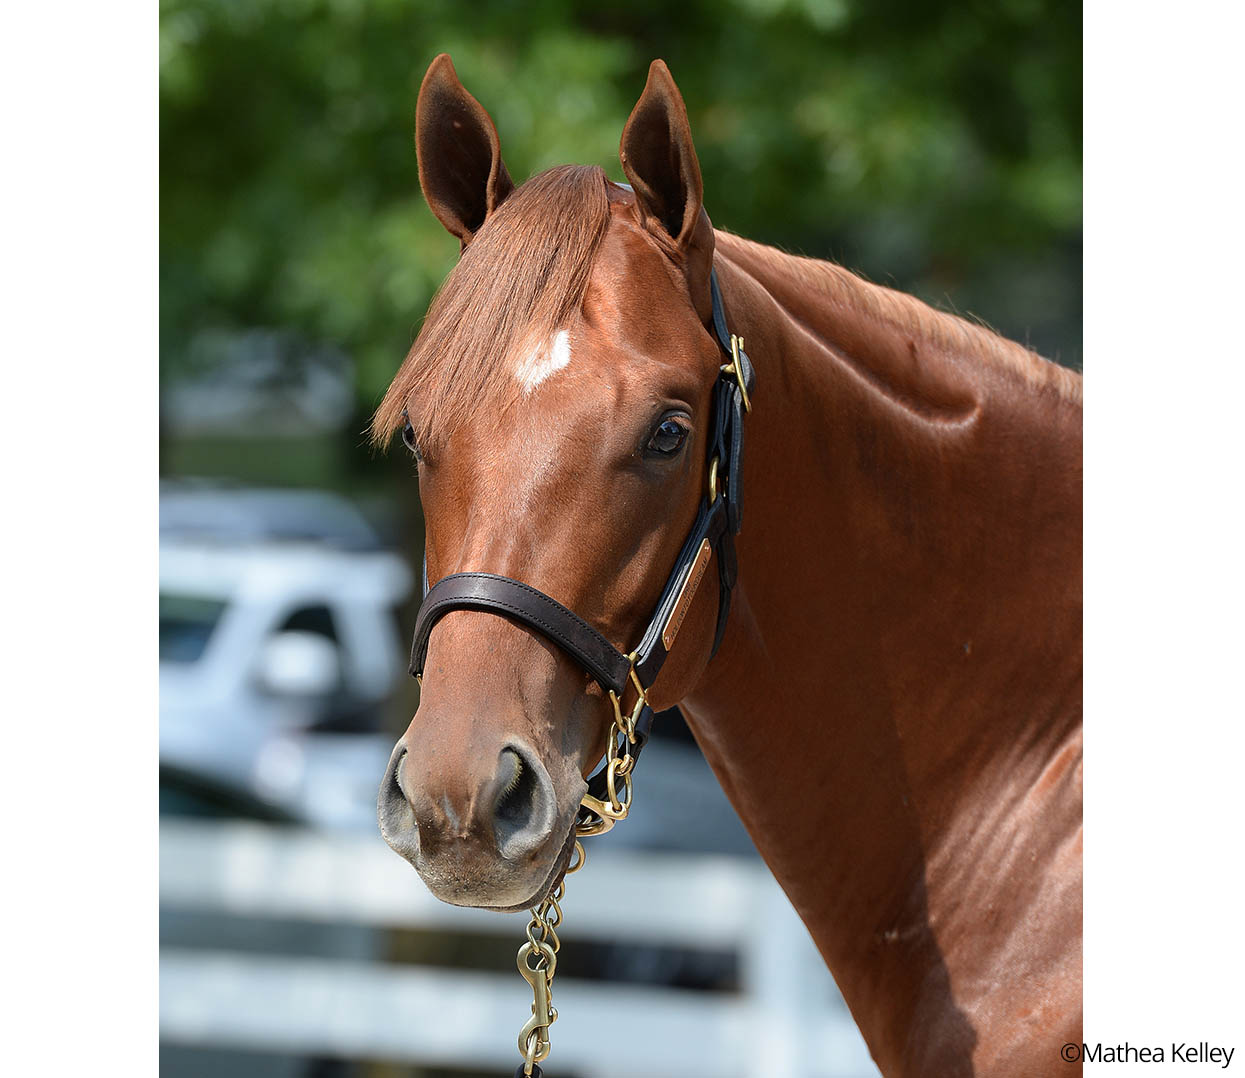 Orb - Holdontoyourdream colt